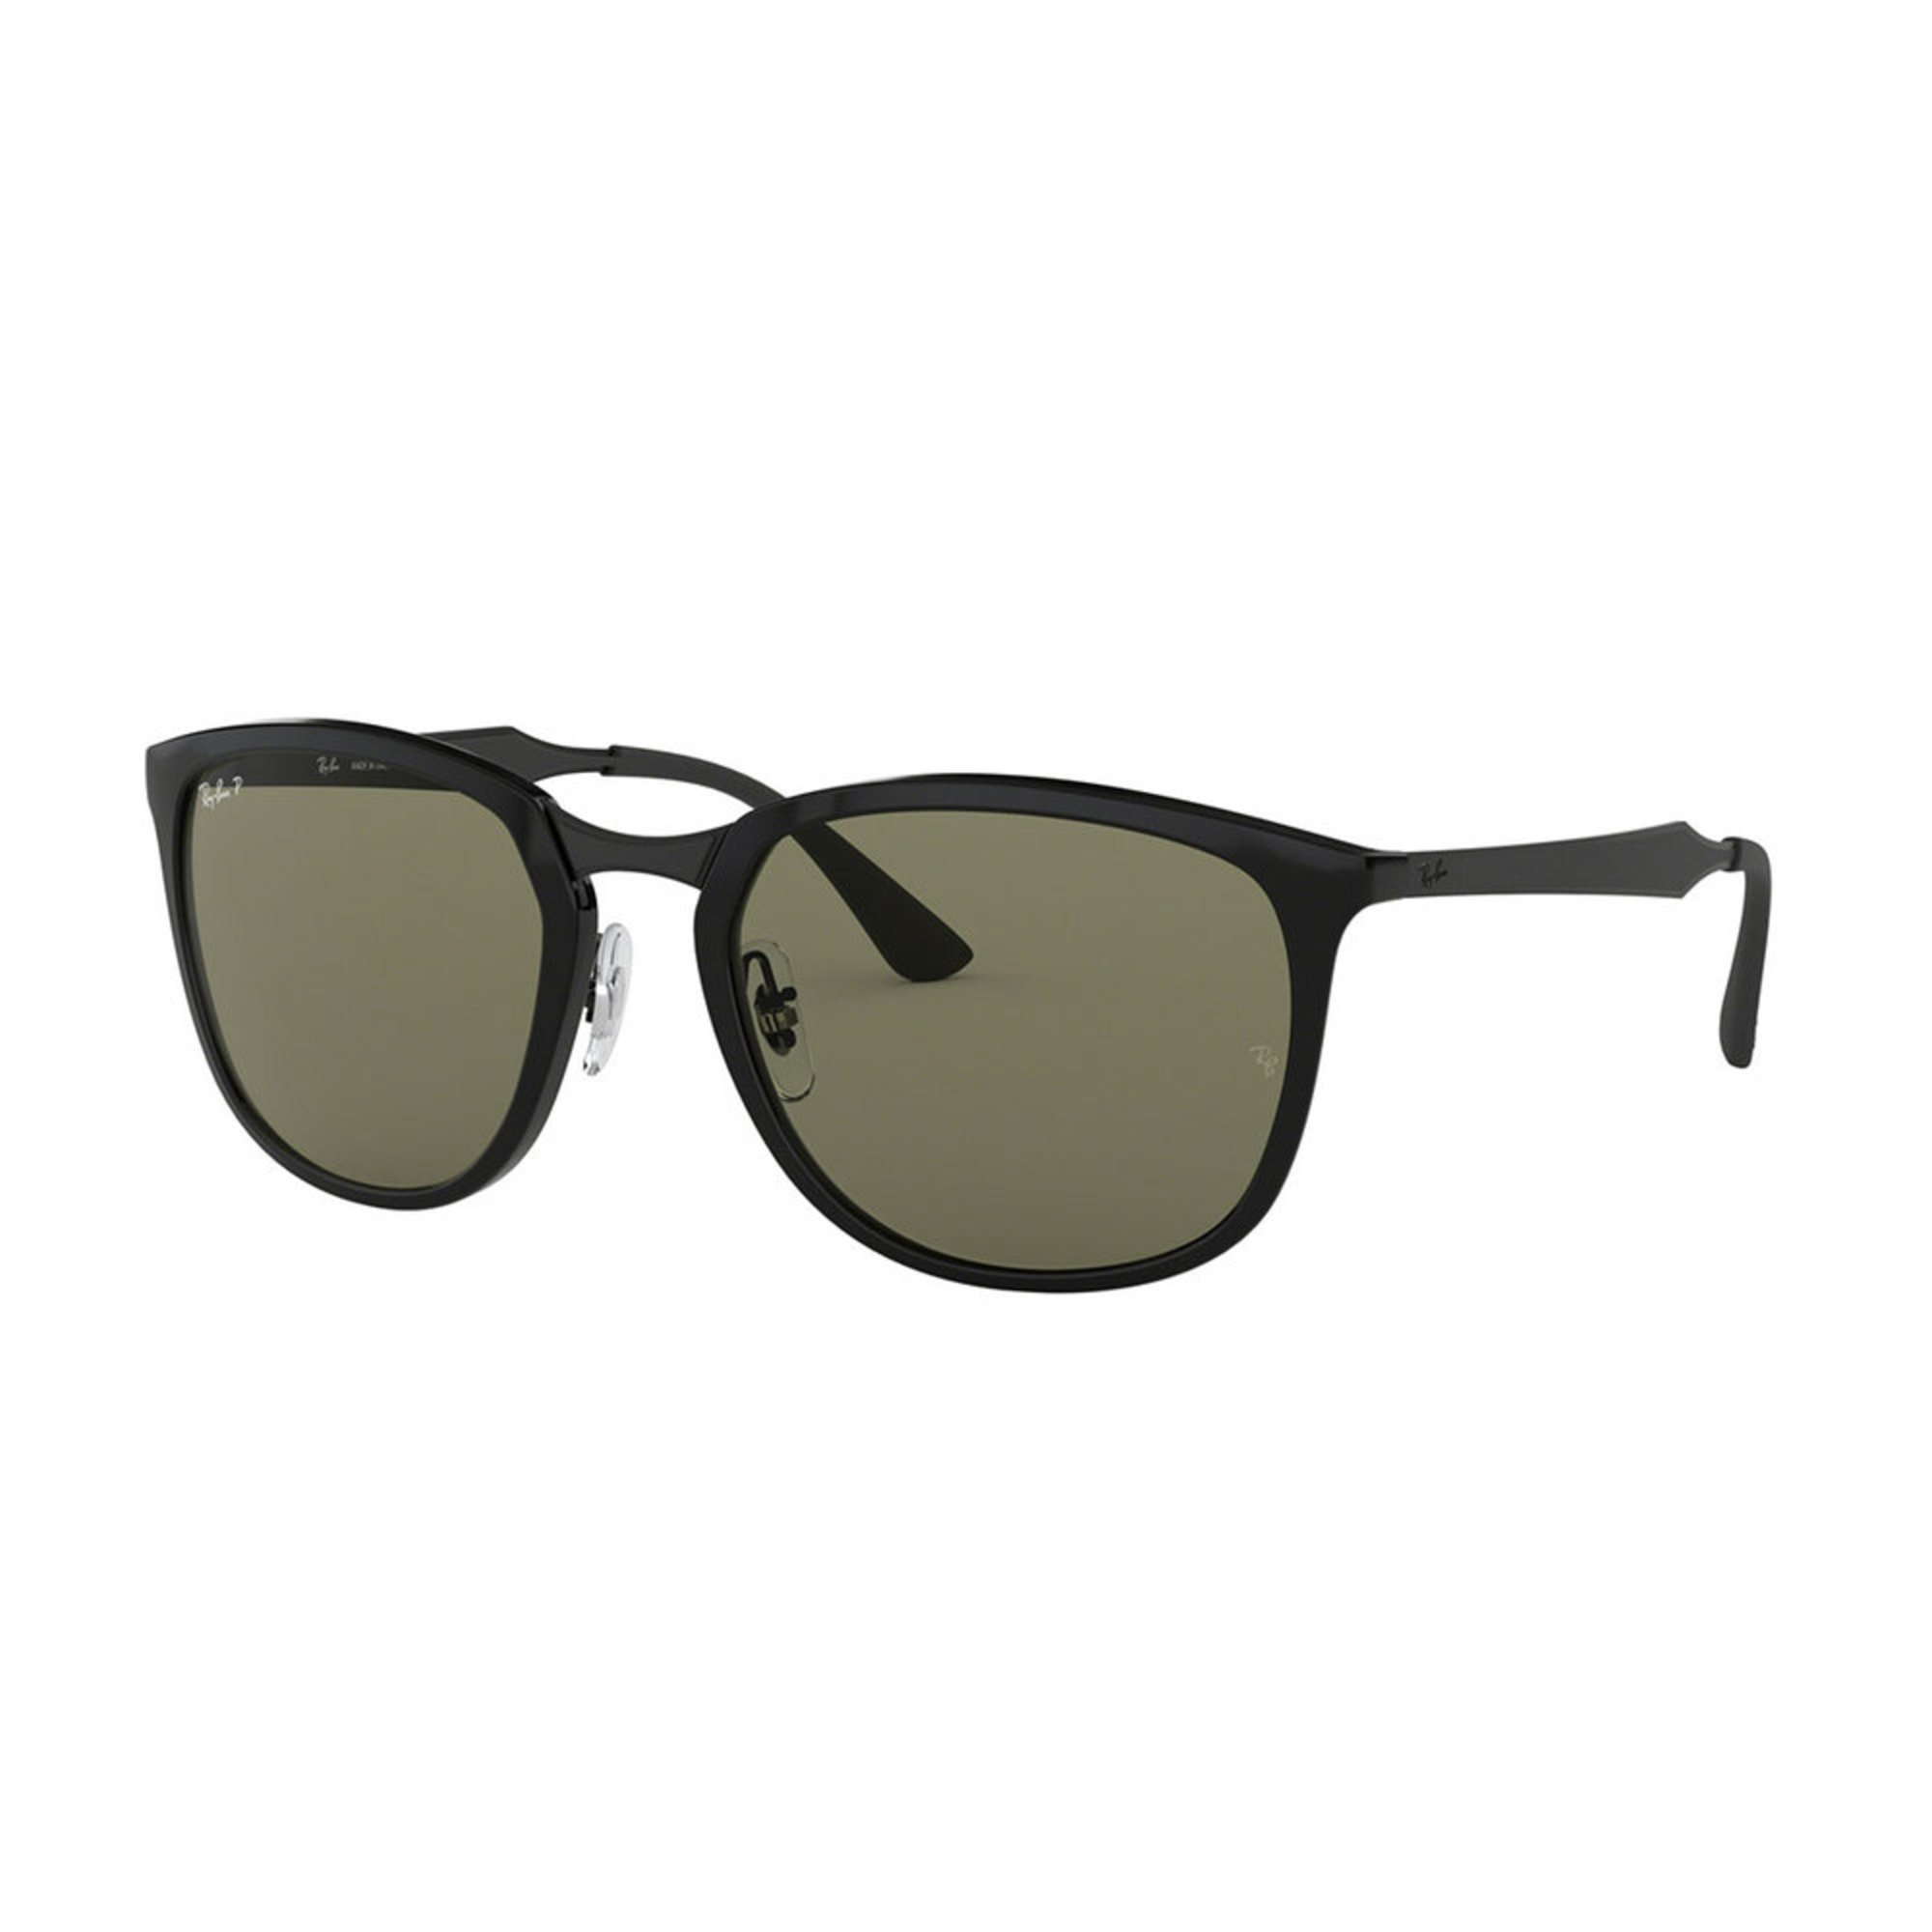 2190a0d3dd1 Ray-Ban. Ray-Ban Unisex Polarized Square Sunglasses